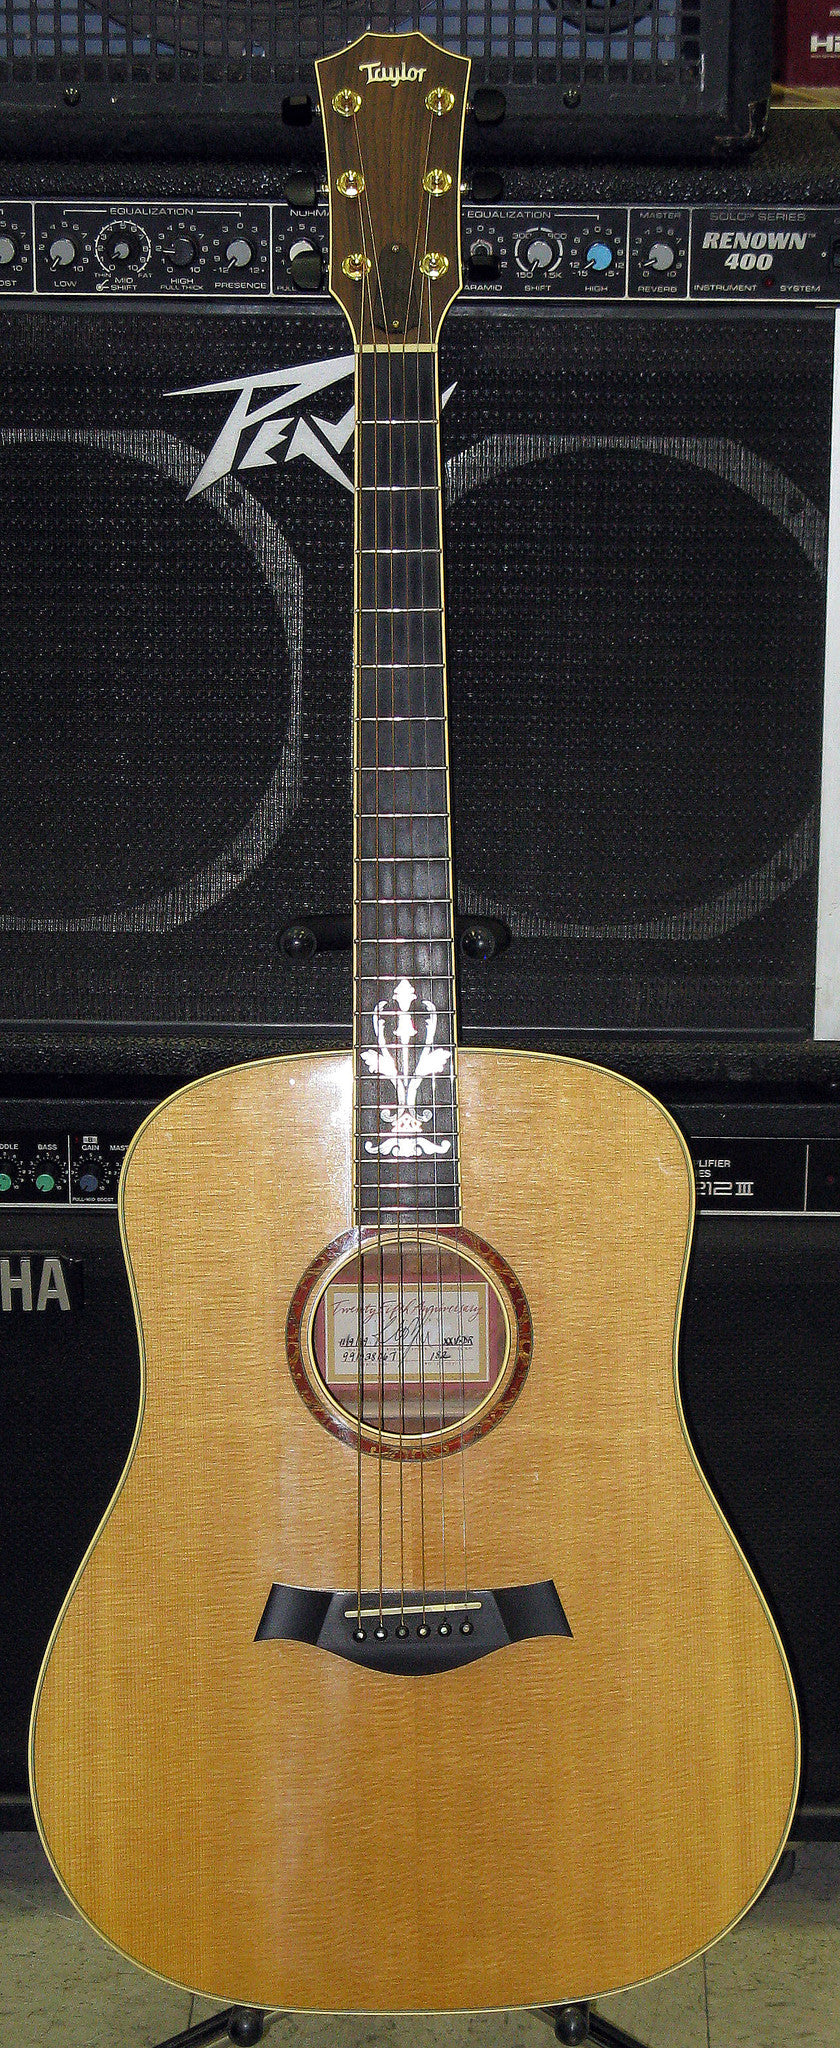 Taylor XXV-DR 25th Anniversary Acoustic Guitar - Chicago Pawners & Jewelers